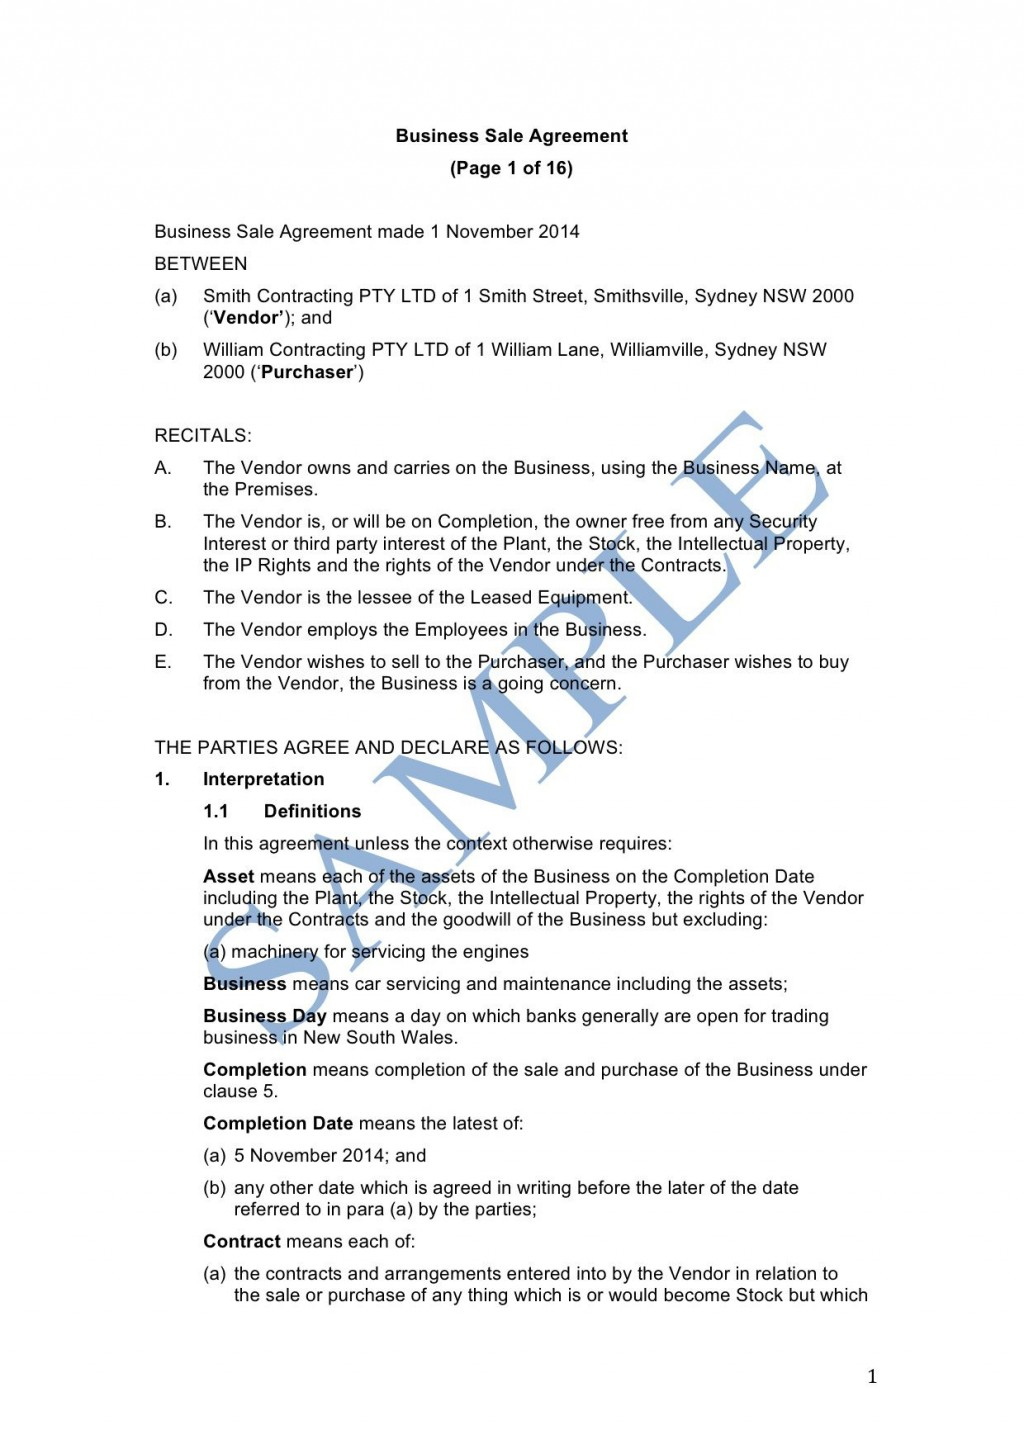 009 Beautiful Busines Purchase Agreement Template Inspiration  Free Uk Sale And Nz Buying ContractLarge